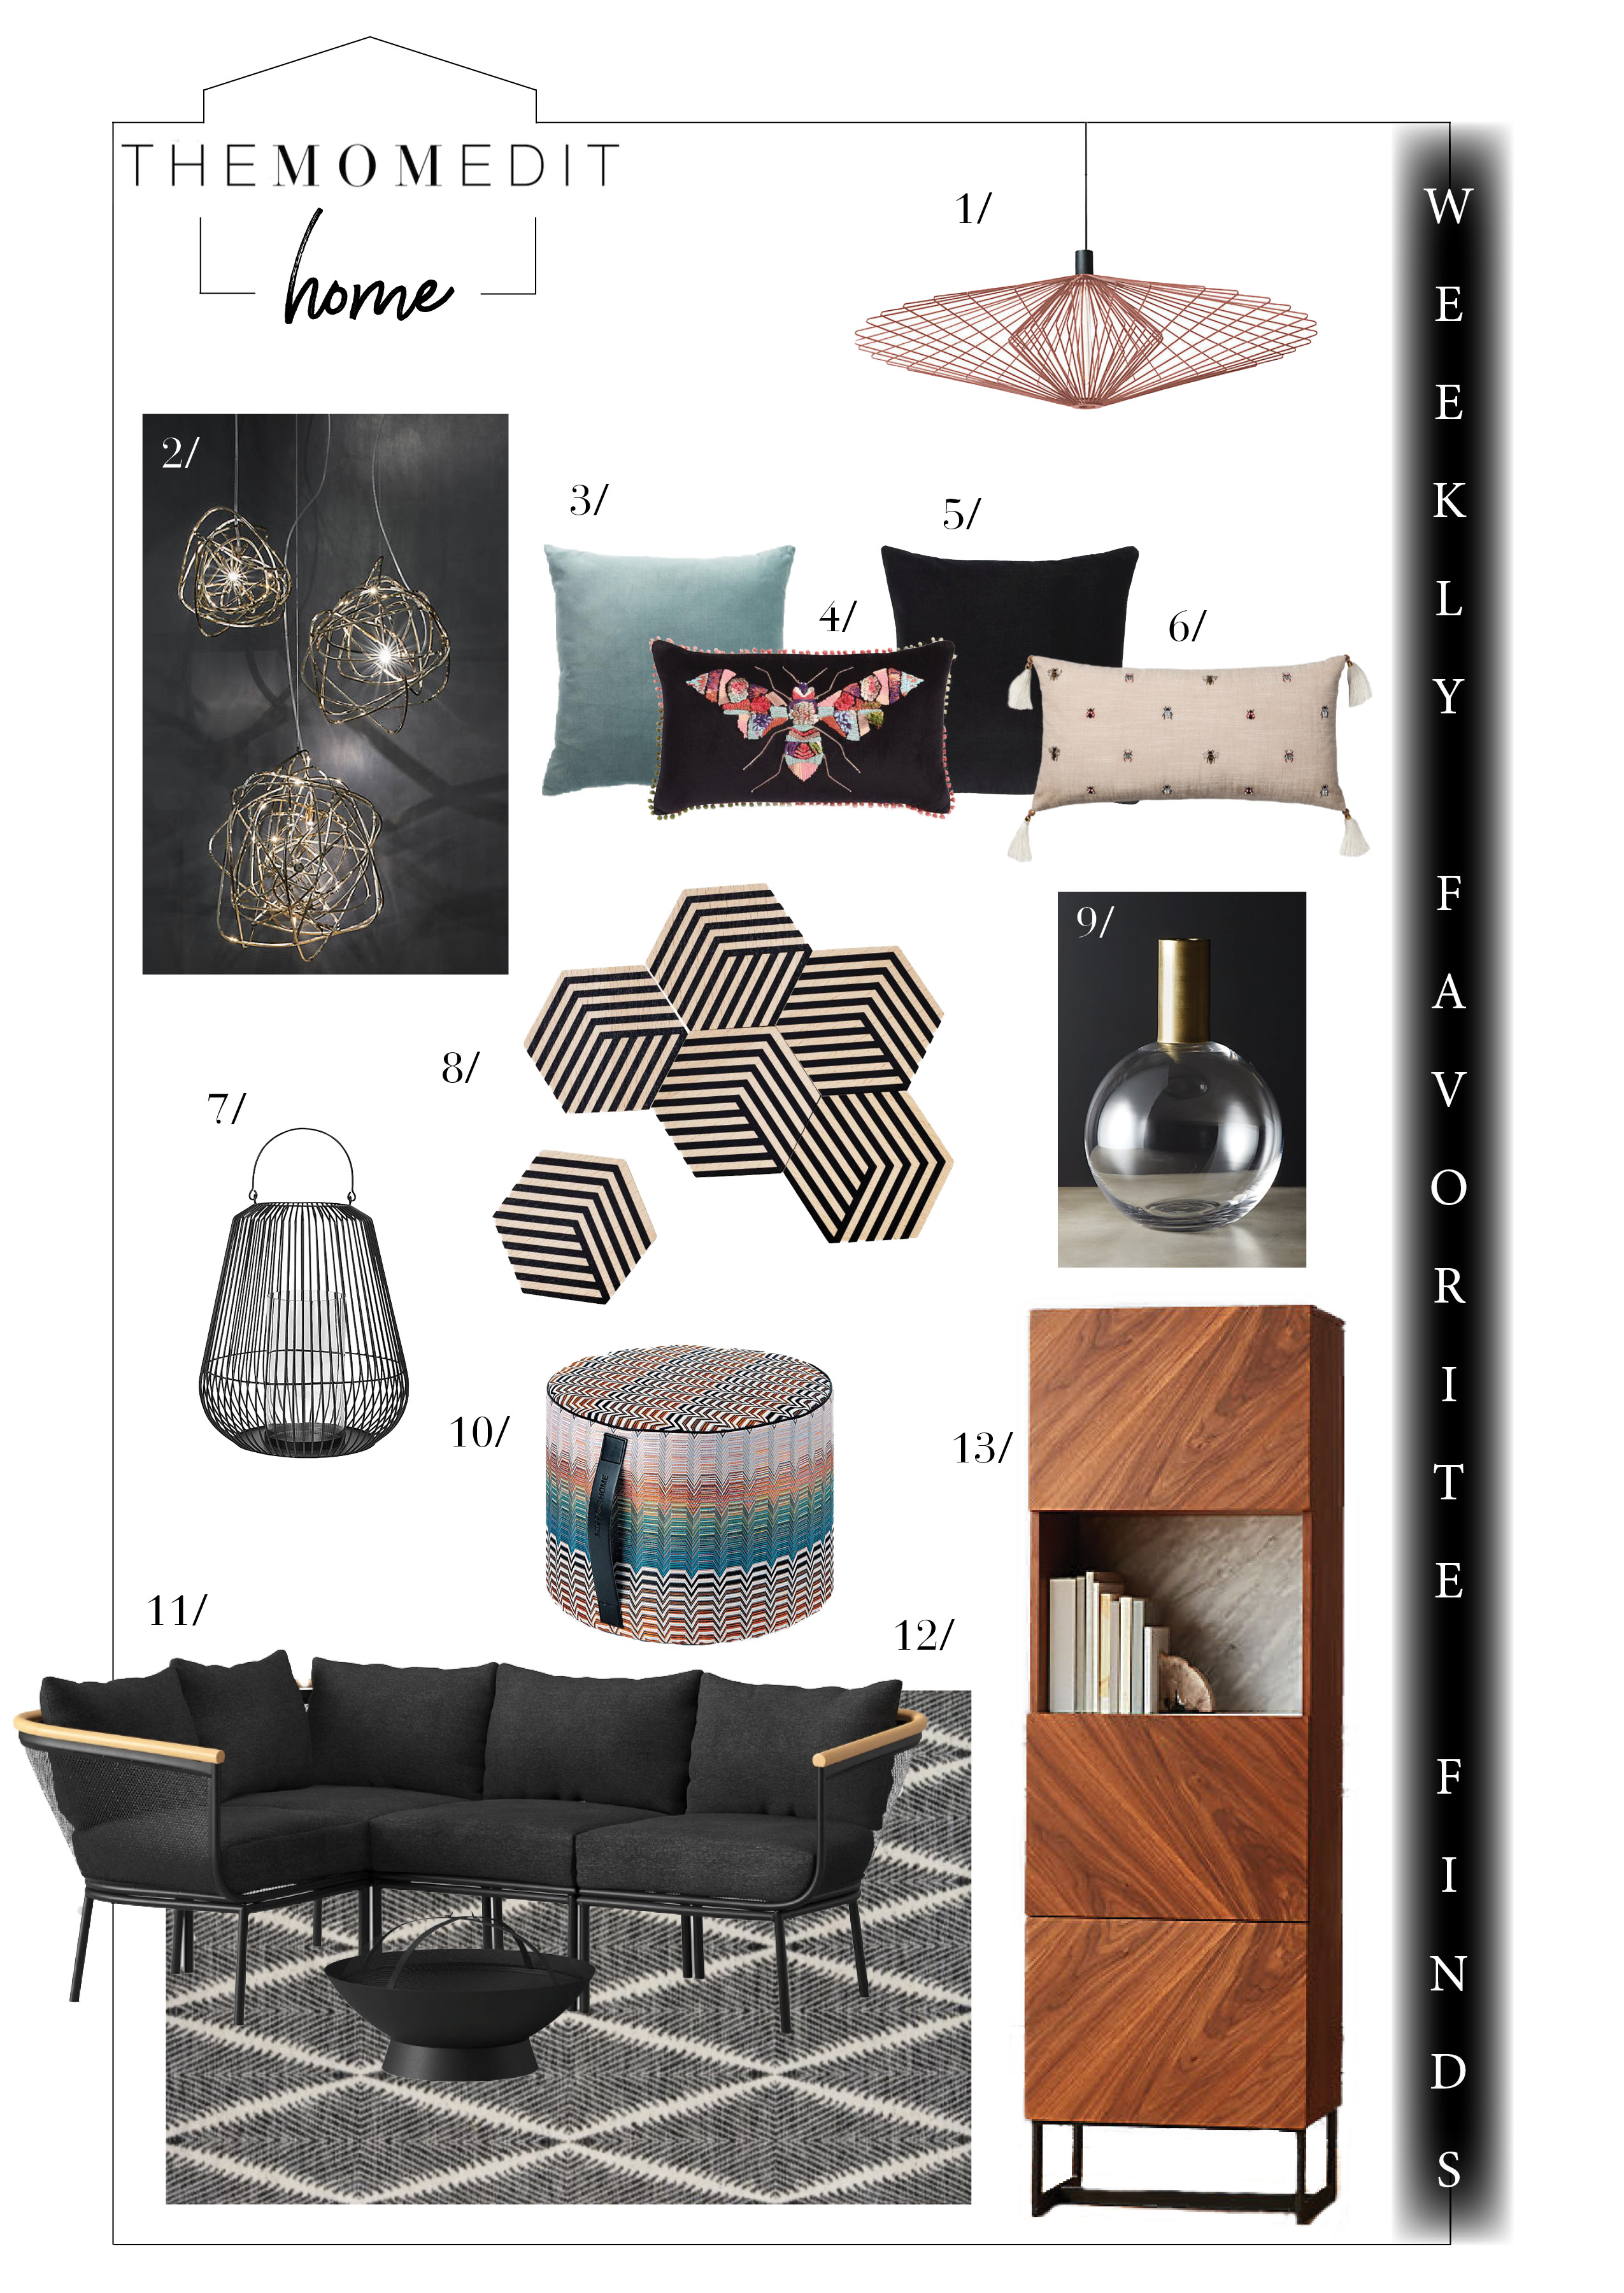 It's mid-winter & we're going buggy. So, we're accepting that & bringing the bugs indoors to spice up our home decor. Check out our favs from CB2 to Gilt.